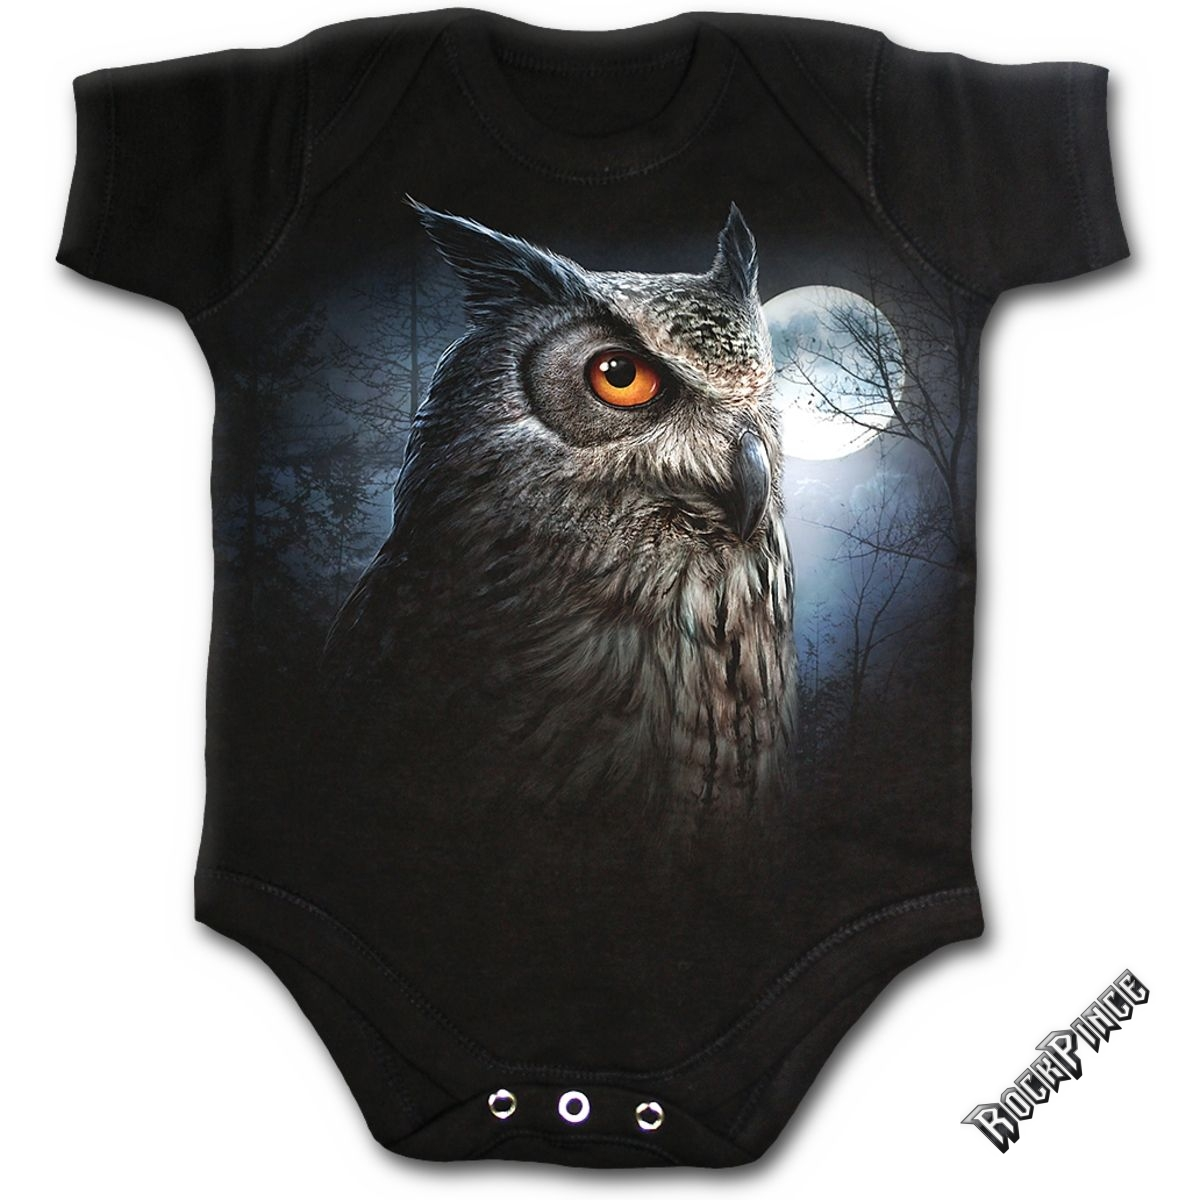 NIGHT WISE - Baby Sleepsuit Black - F018K002